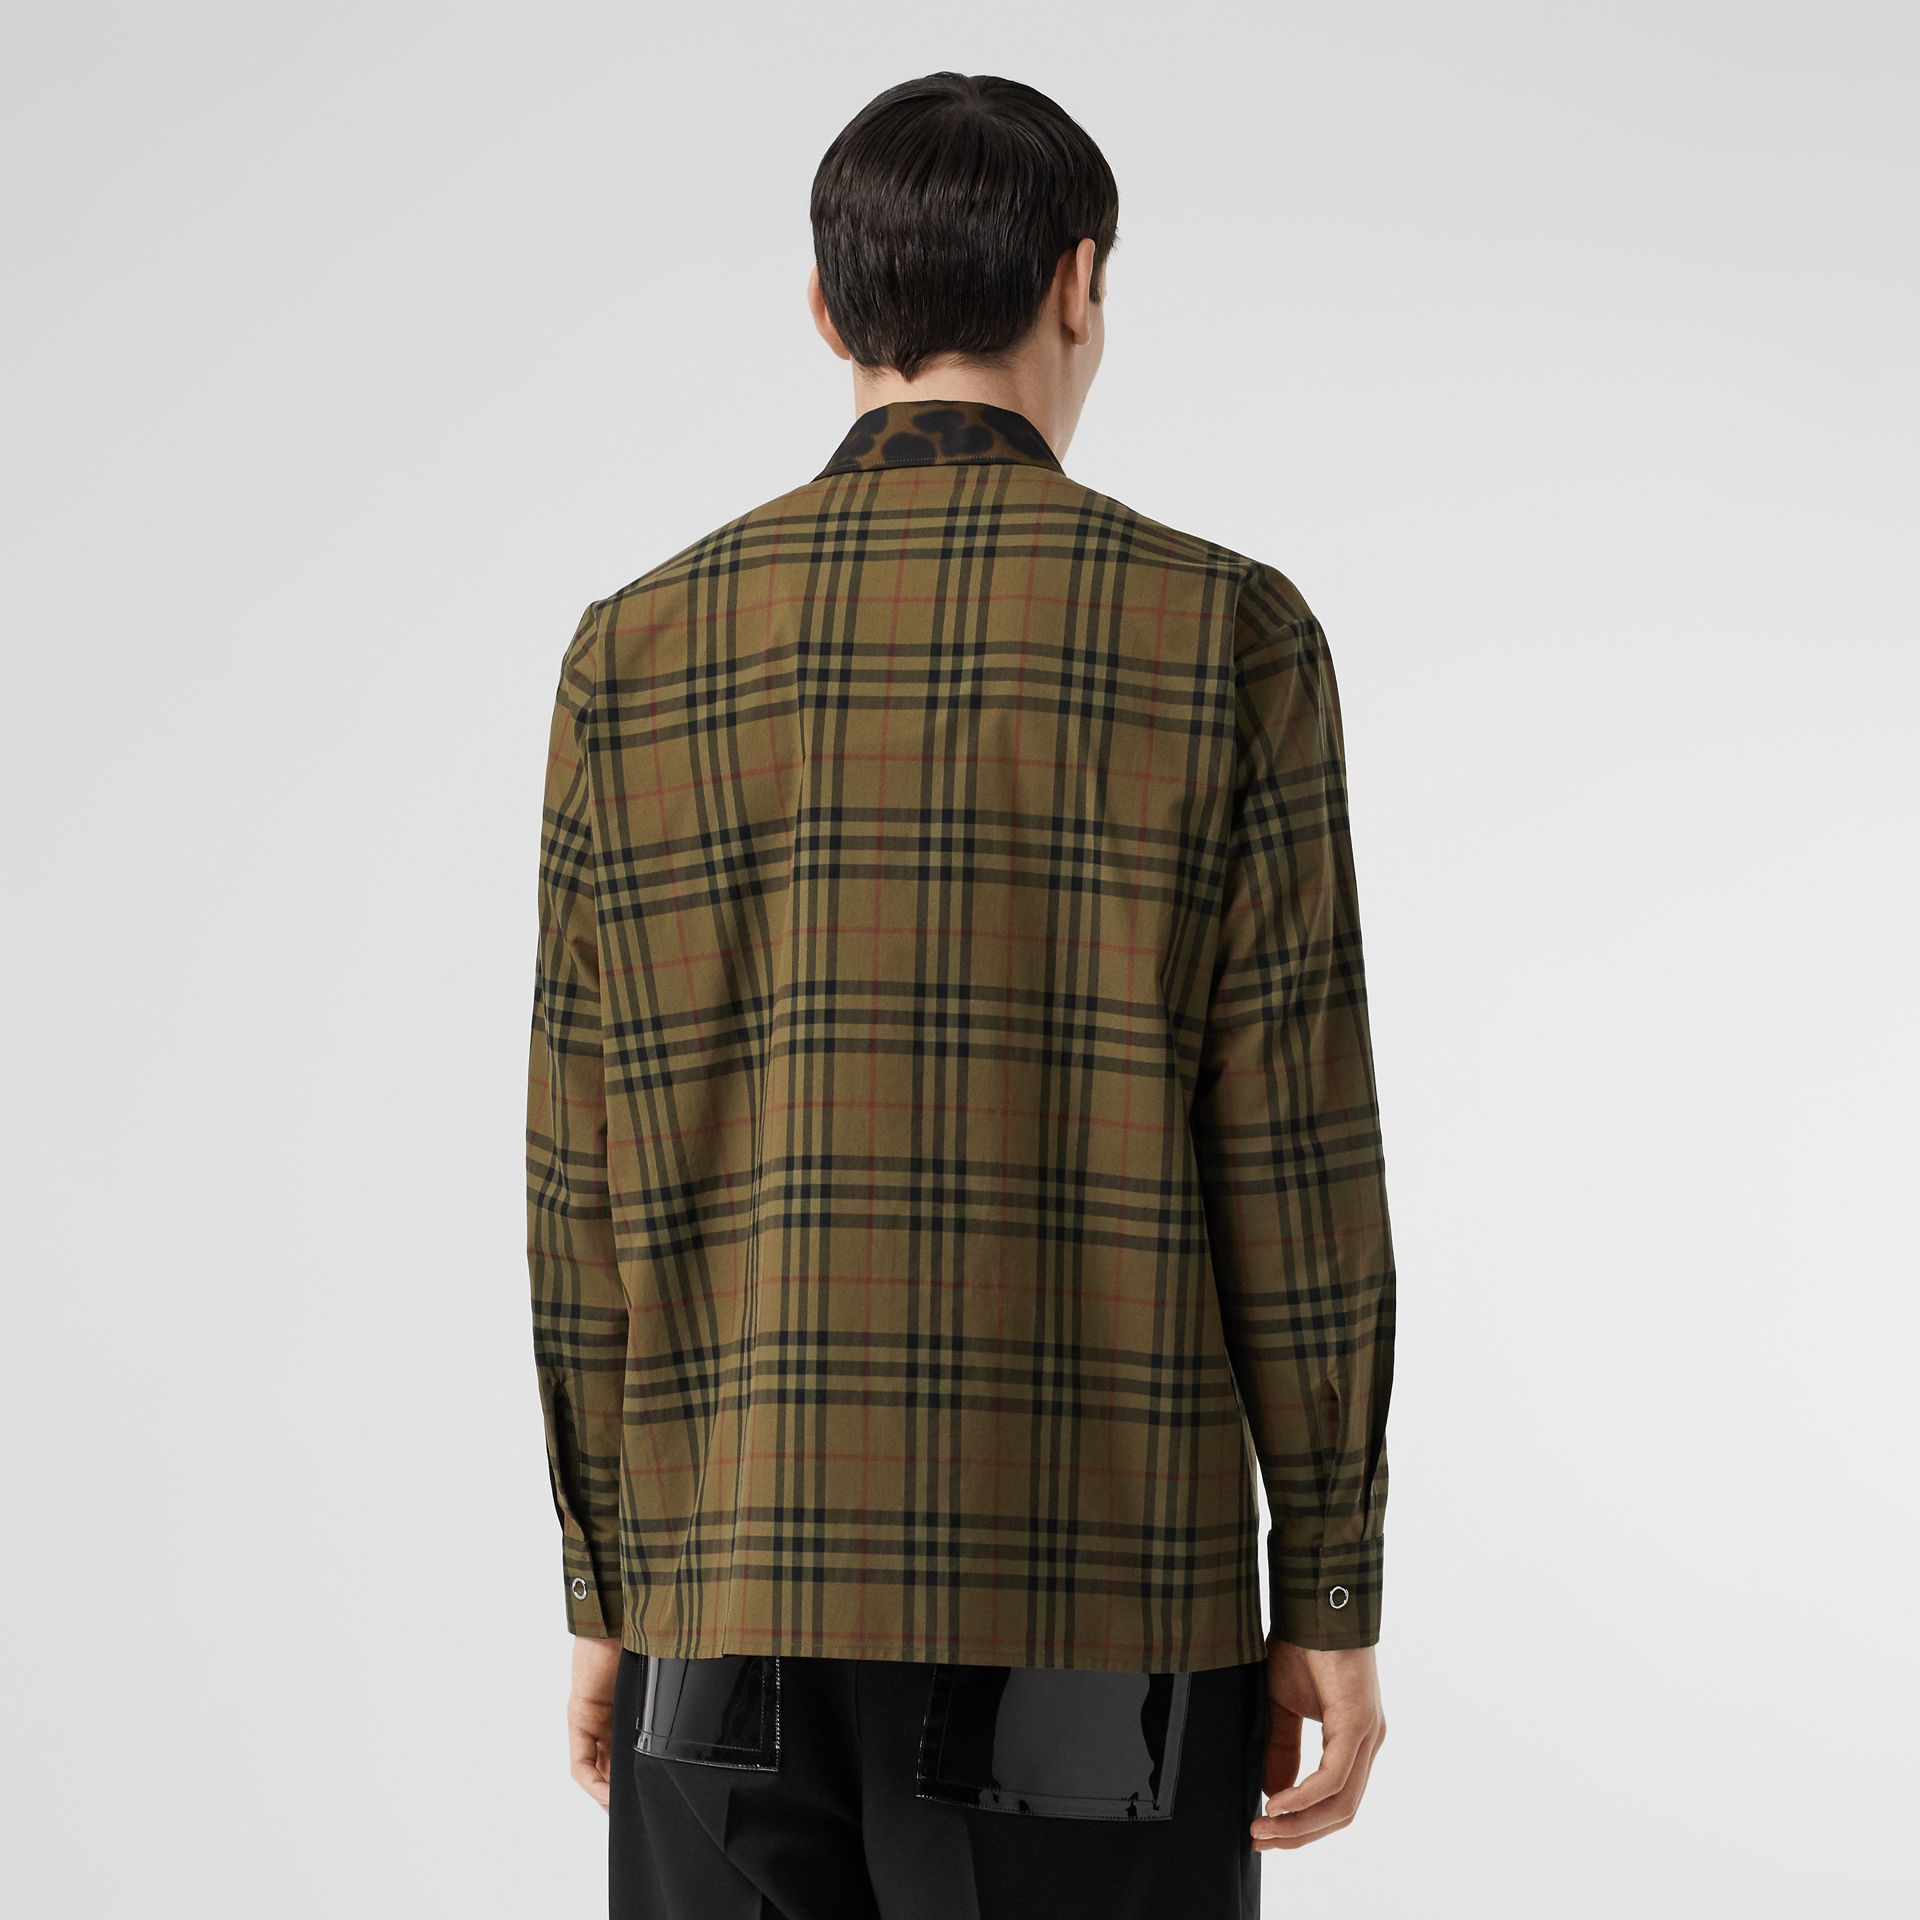 Contrast Collar Vintage Check Cotton Shirt in Army Green | Burberry United States - gallery image 2